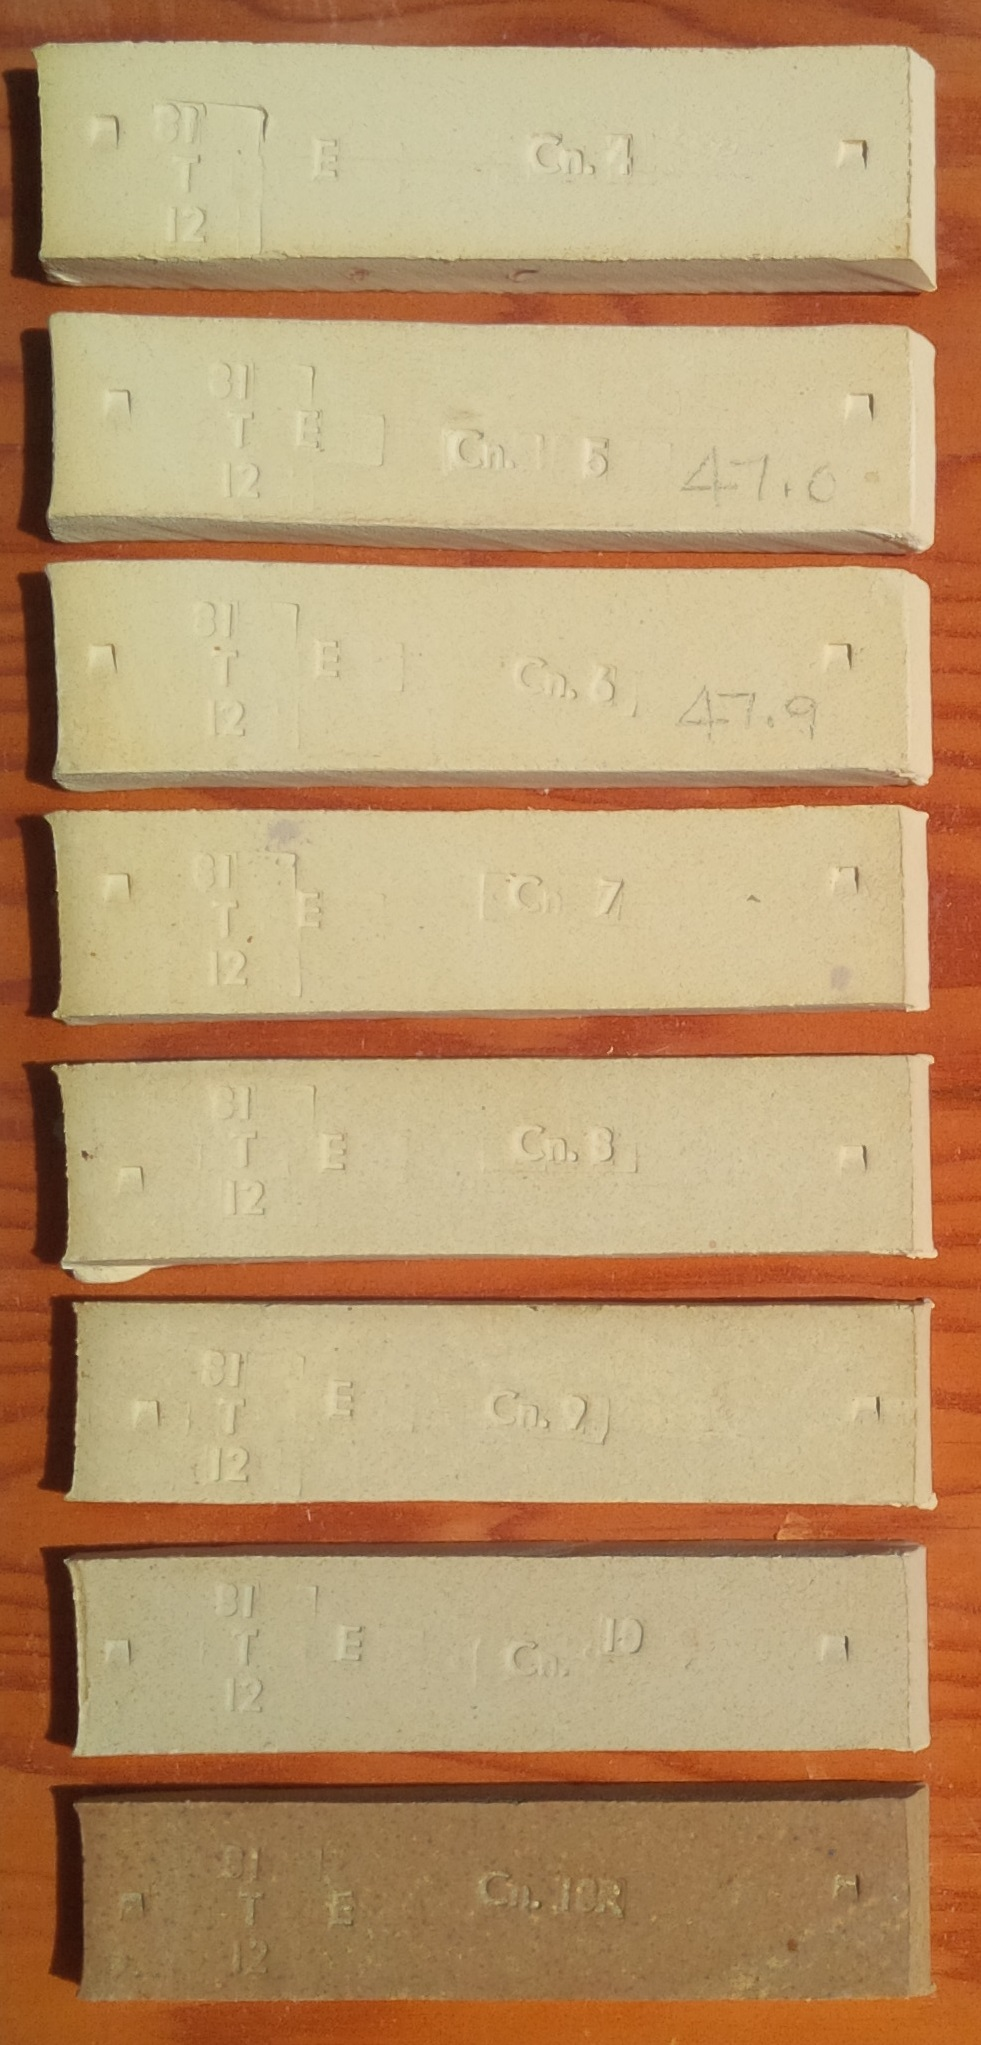 Fired bars of Cedar Heights Bonding clay